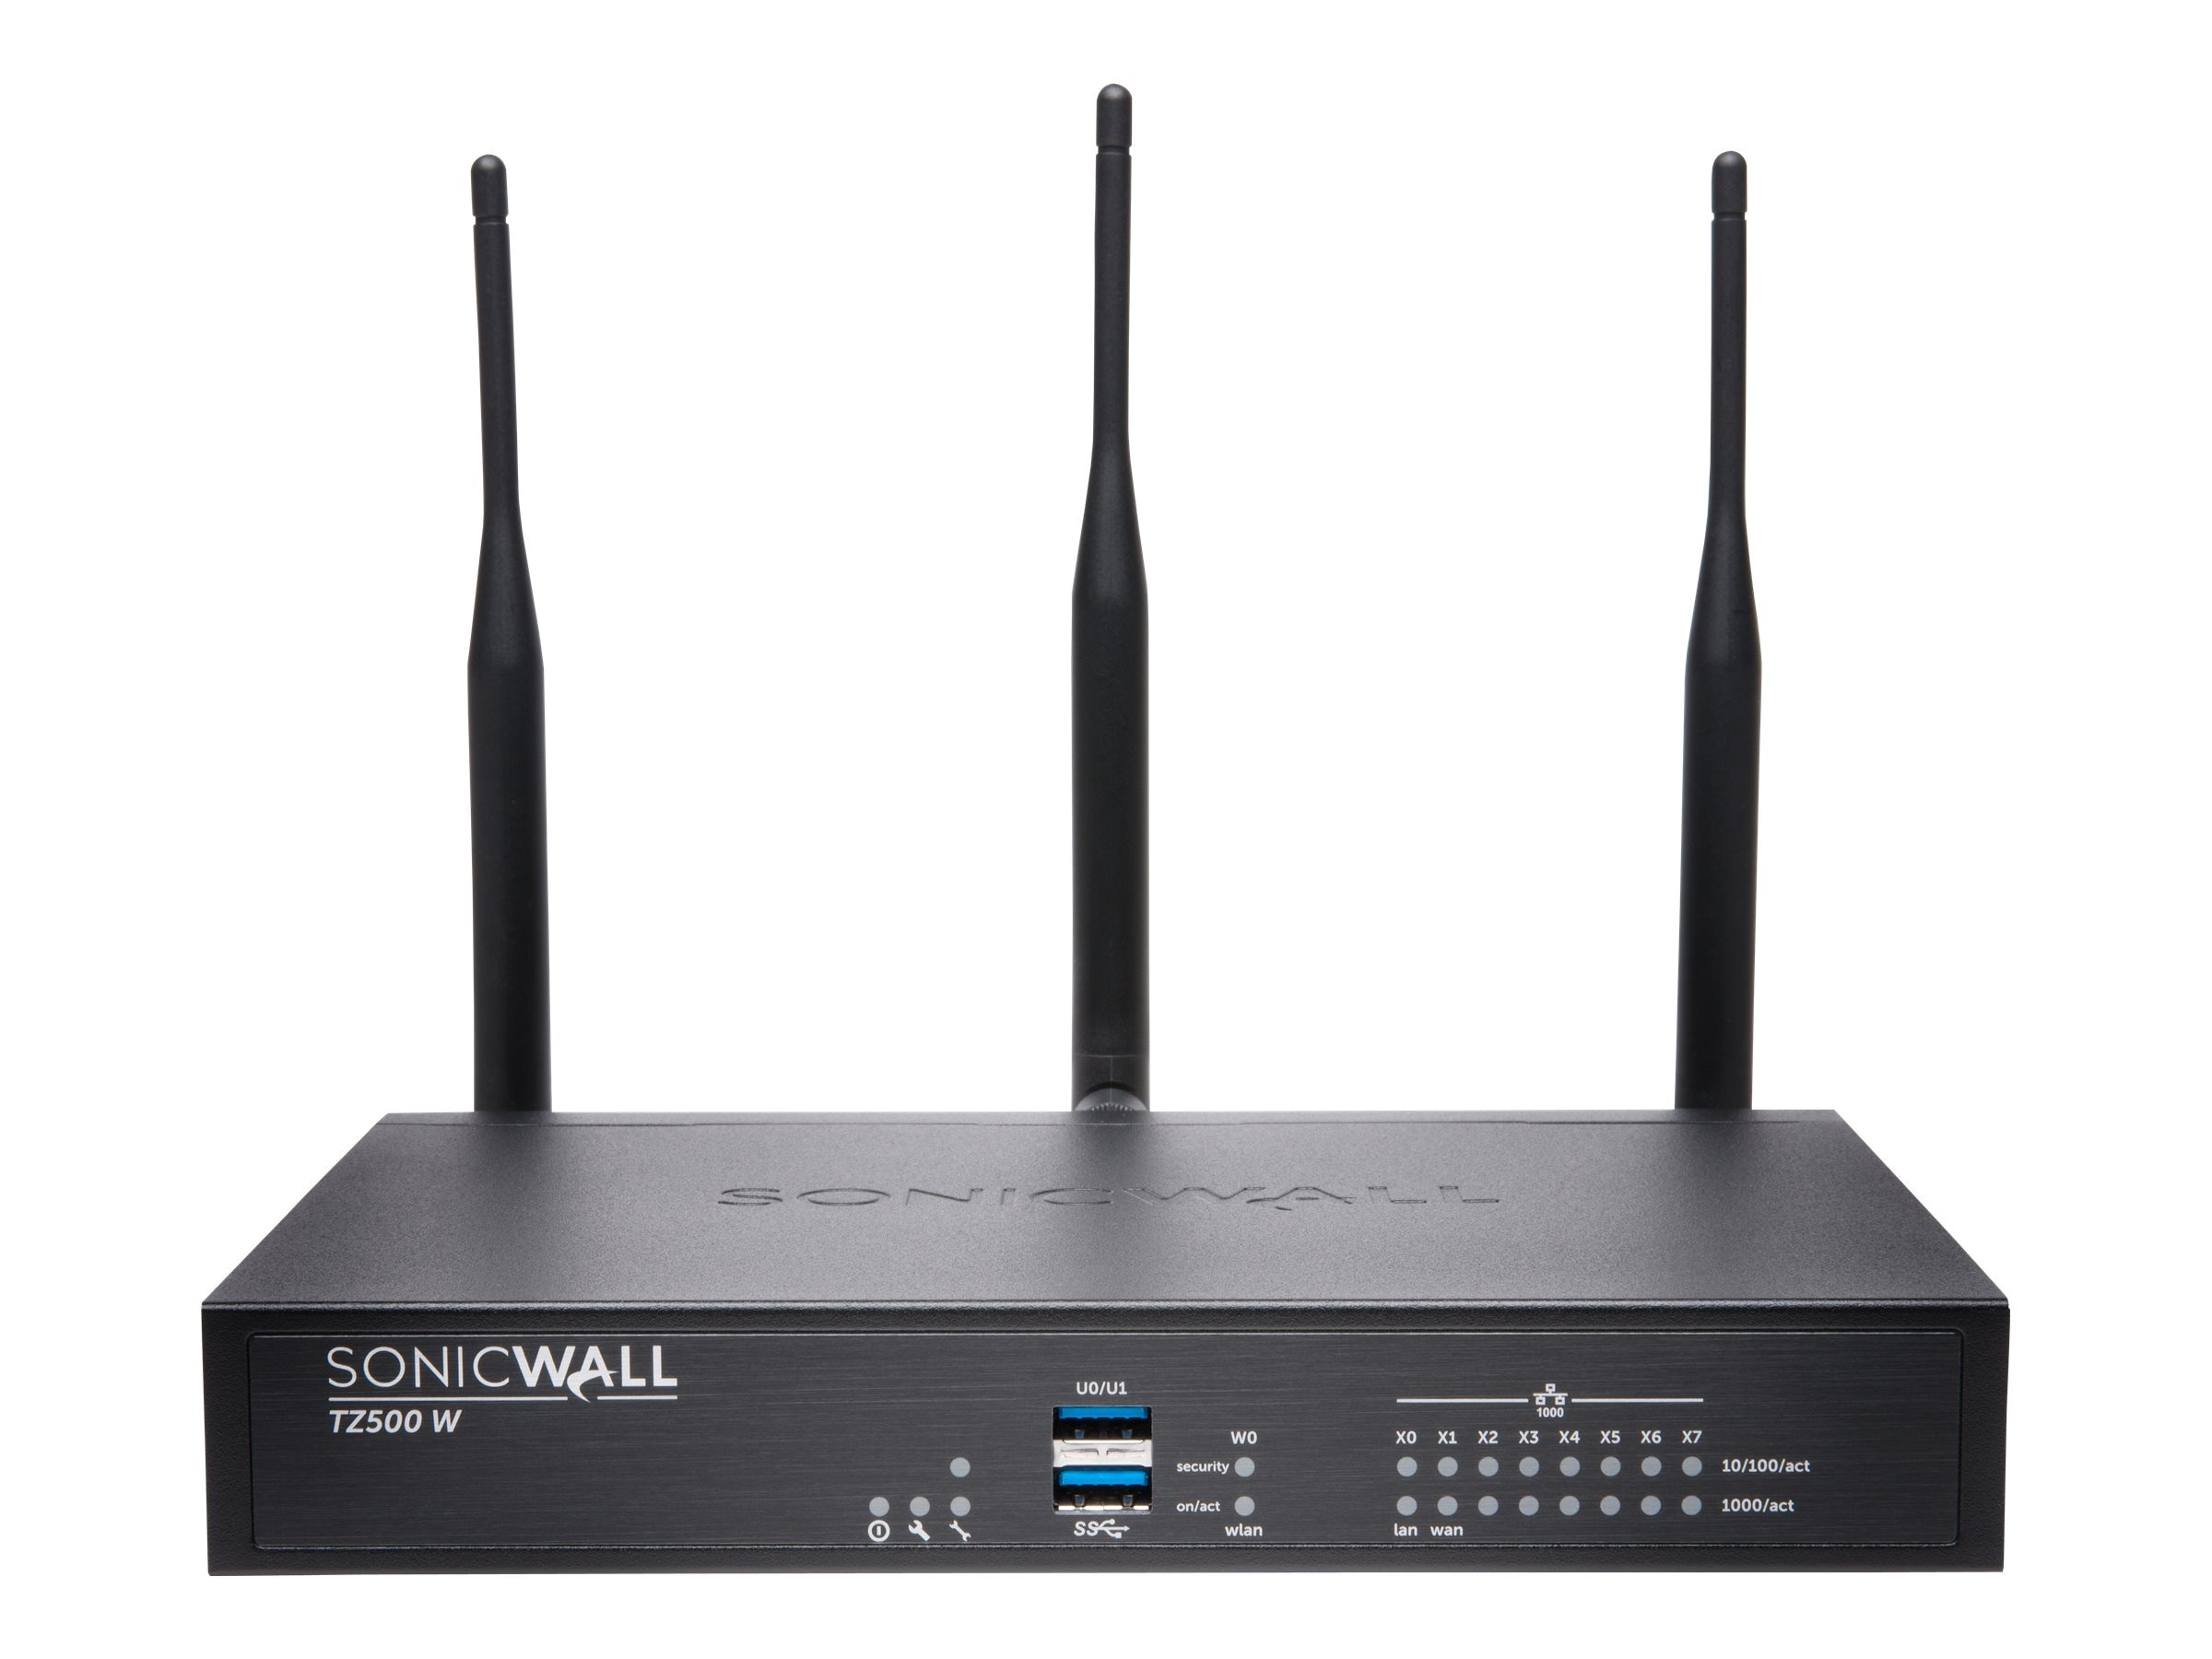 SonicWALL 01-SSC-0430 Image 2